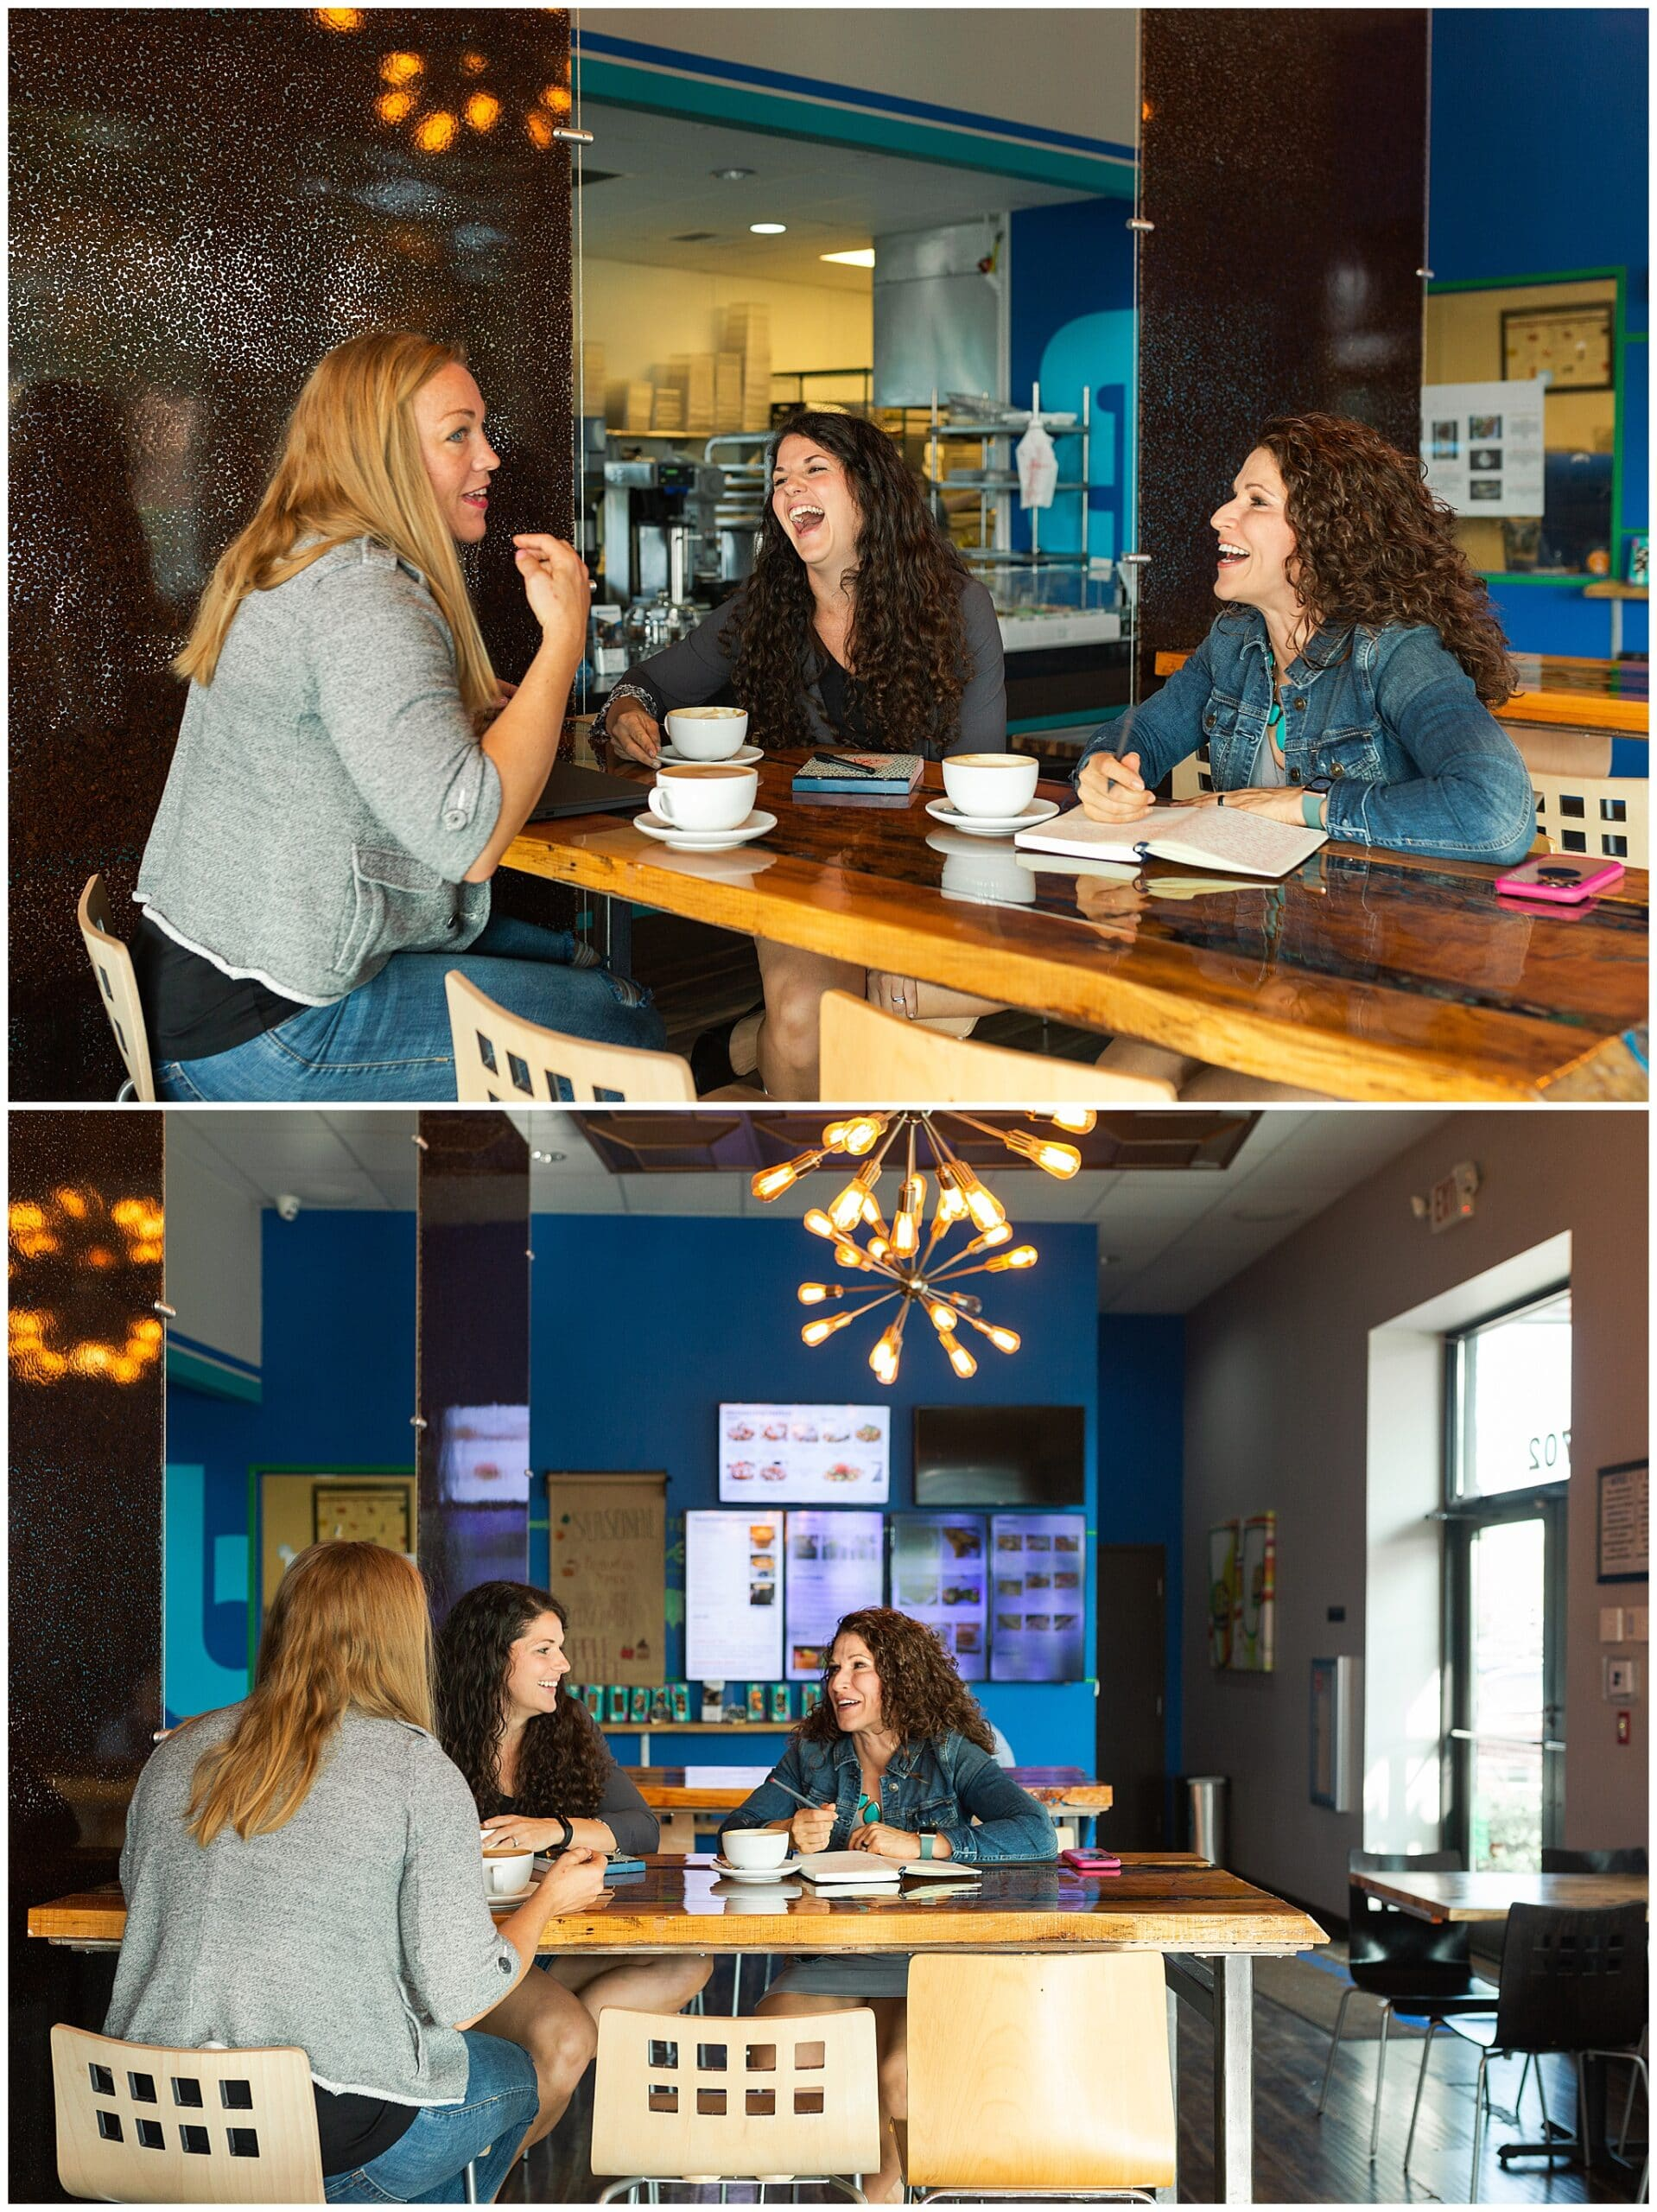 nutritionist from Focused and Fit Nutrition meeting a client at a cafe captured by Swish and Click Photography